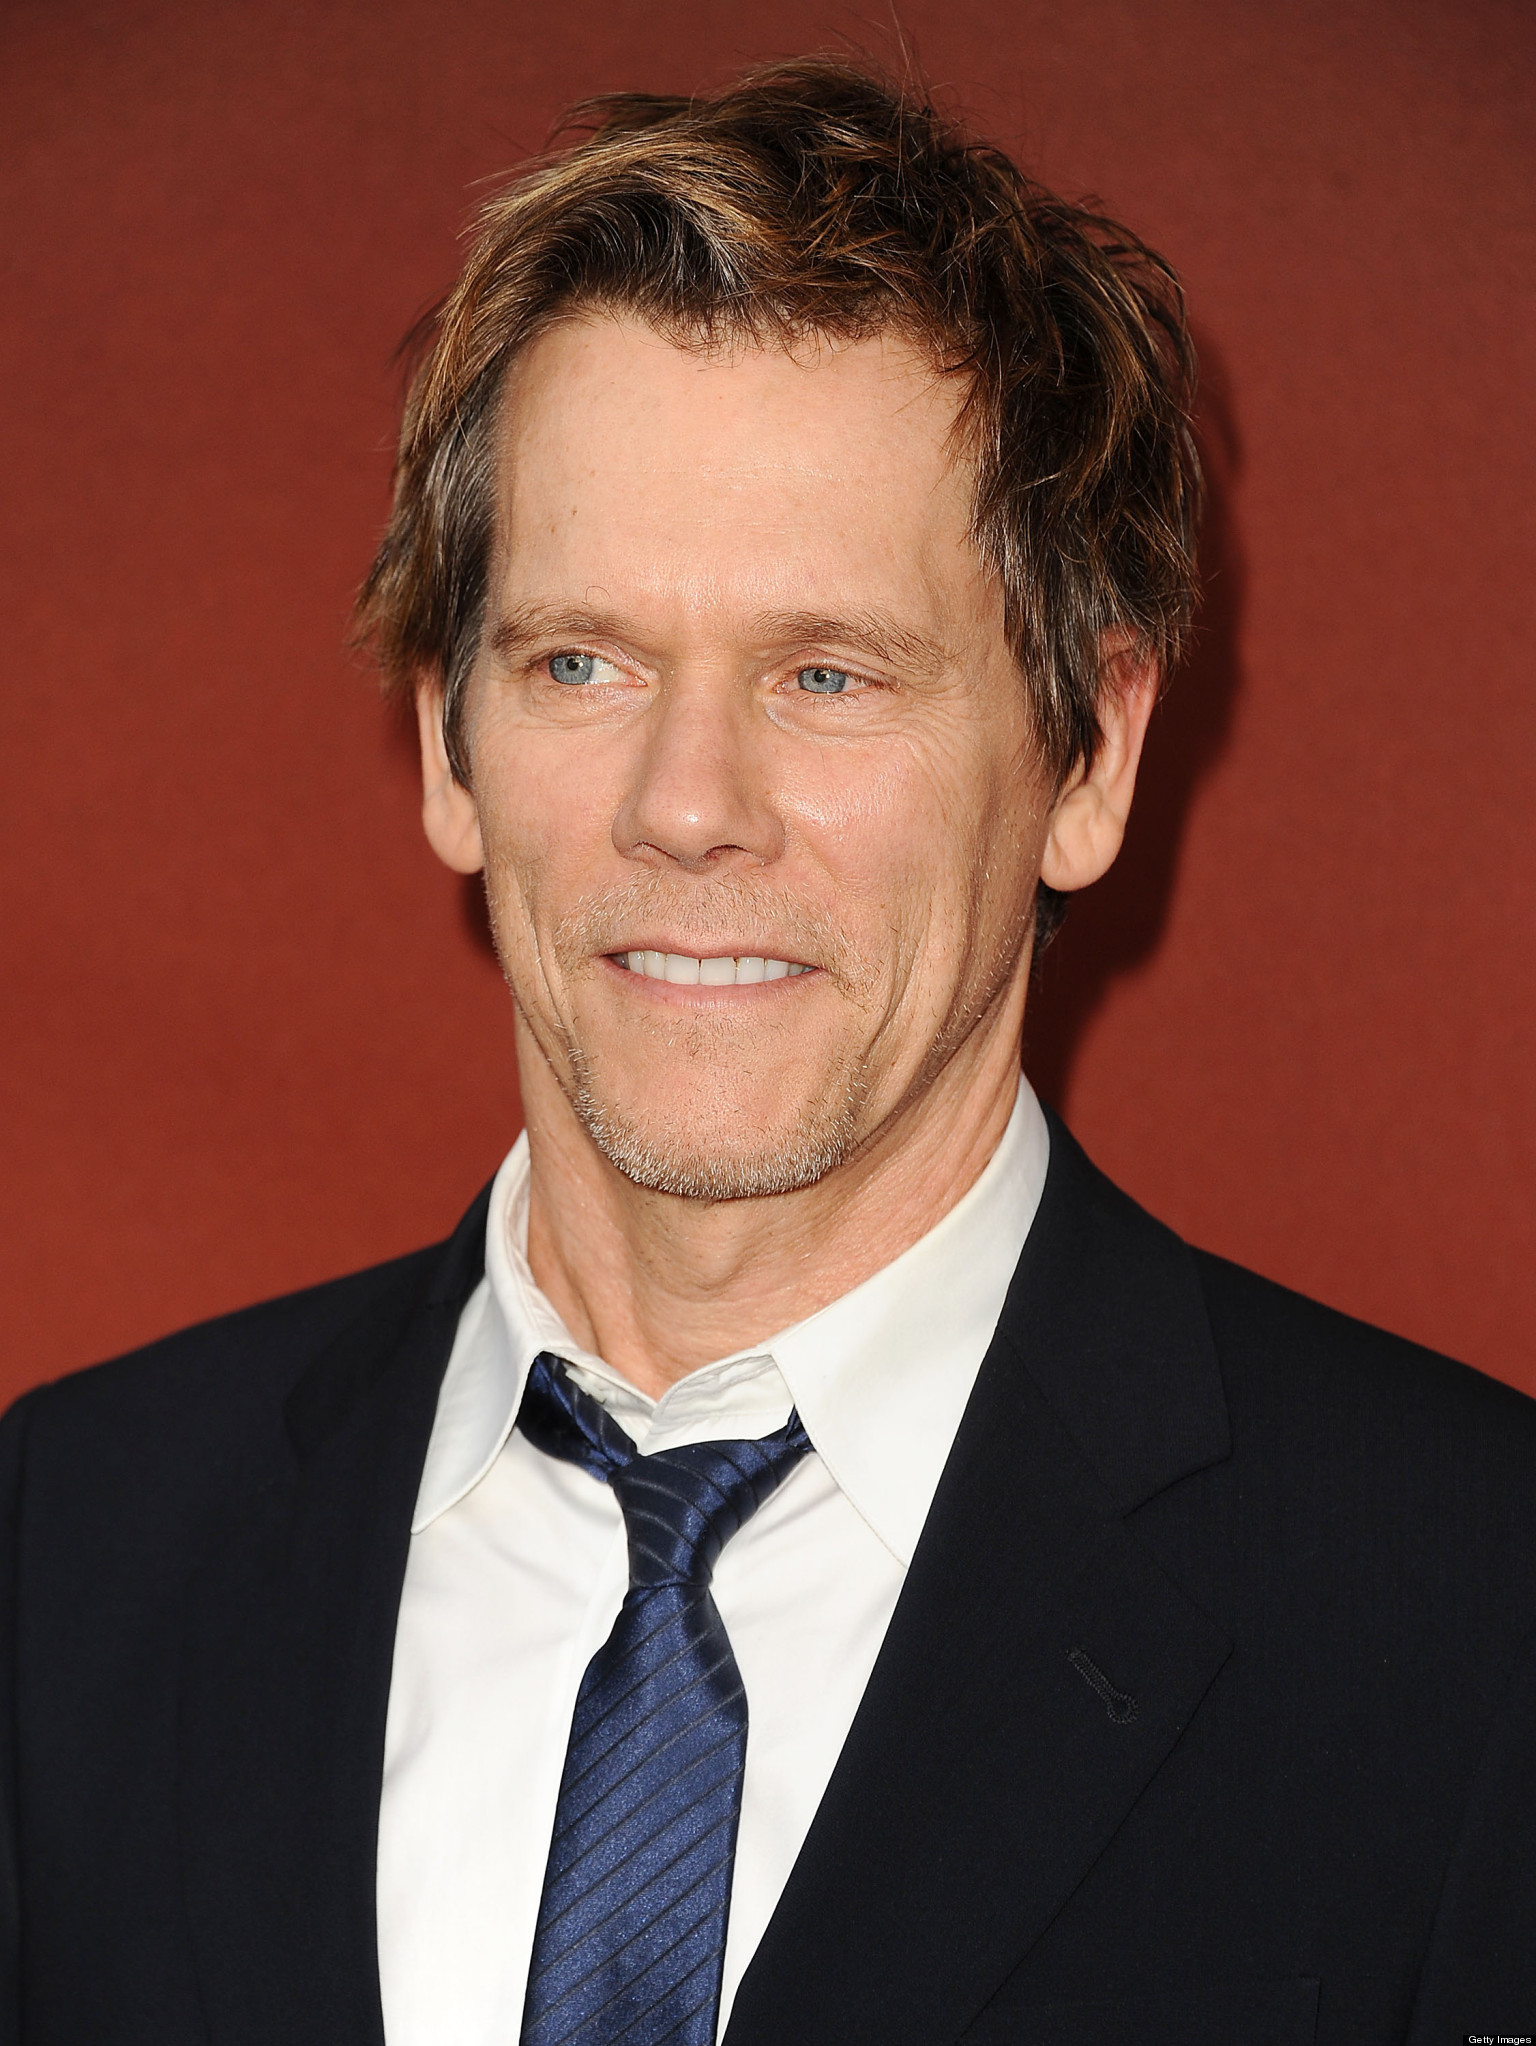 The Song Kevin Bacon Doesn't Want To Hear At Weddings